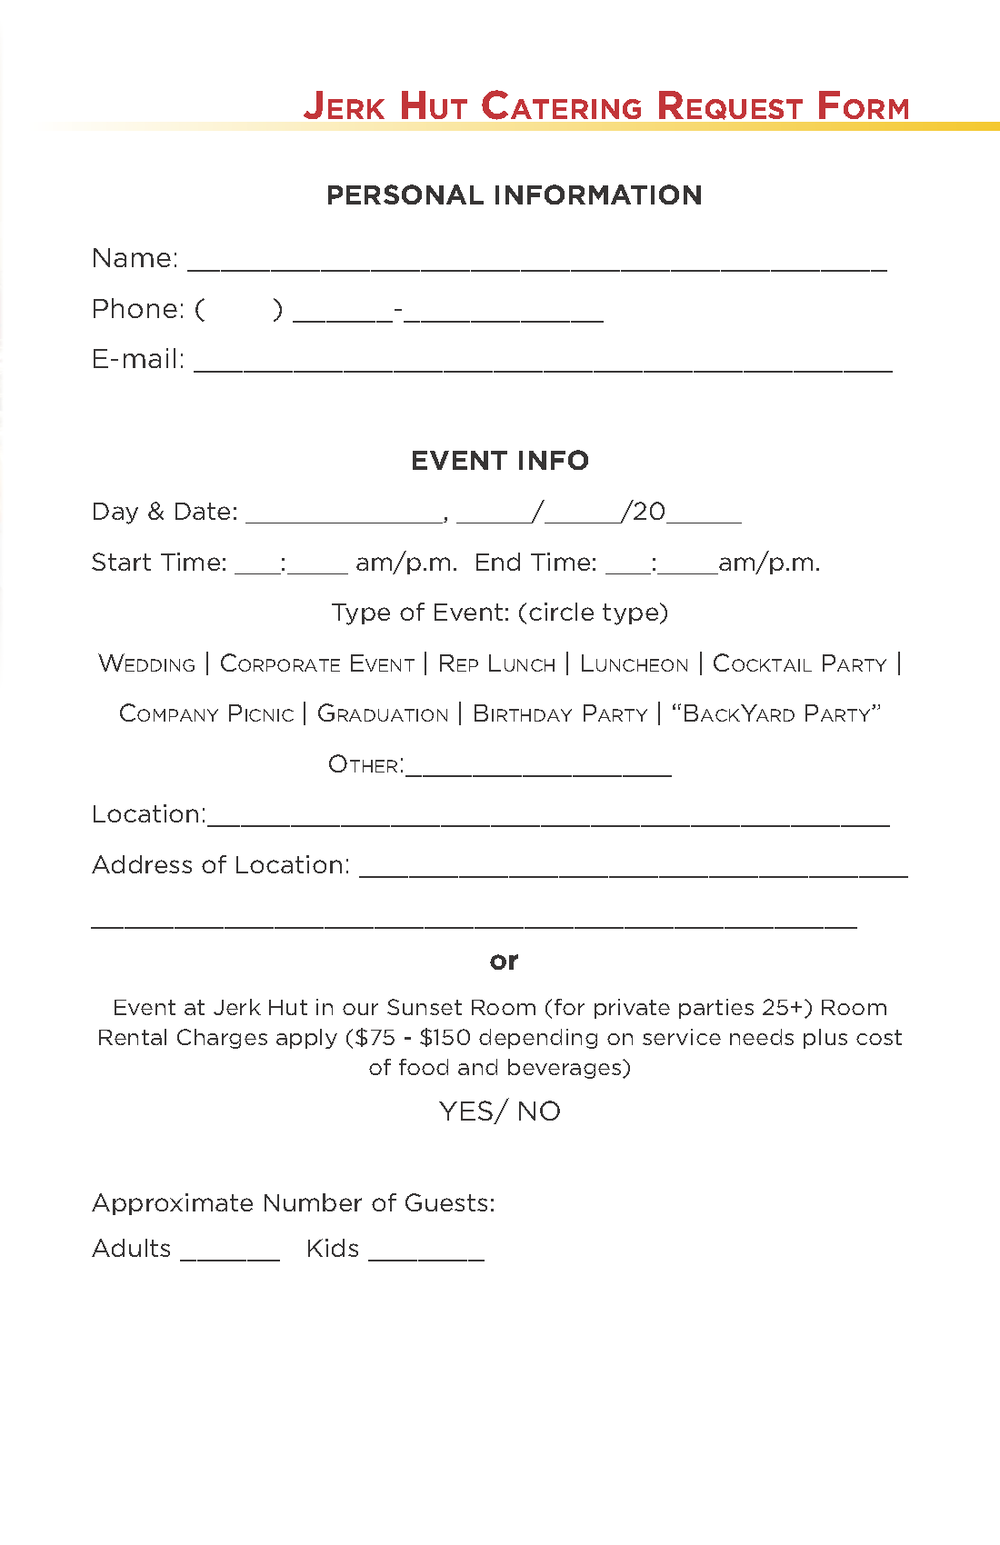 JHCatering_booklet2012-nvpg_NEW_6_15_15_Page_25.png